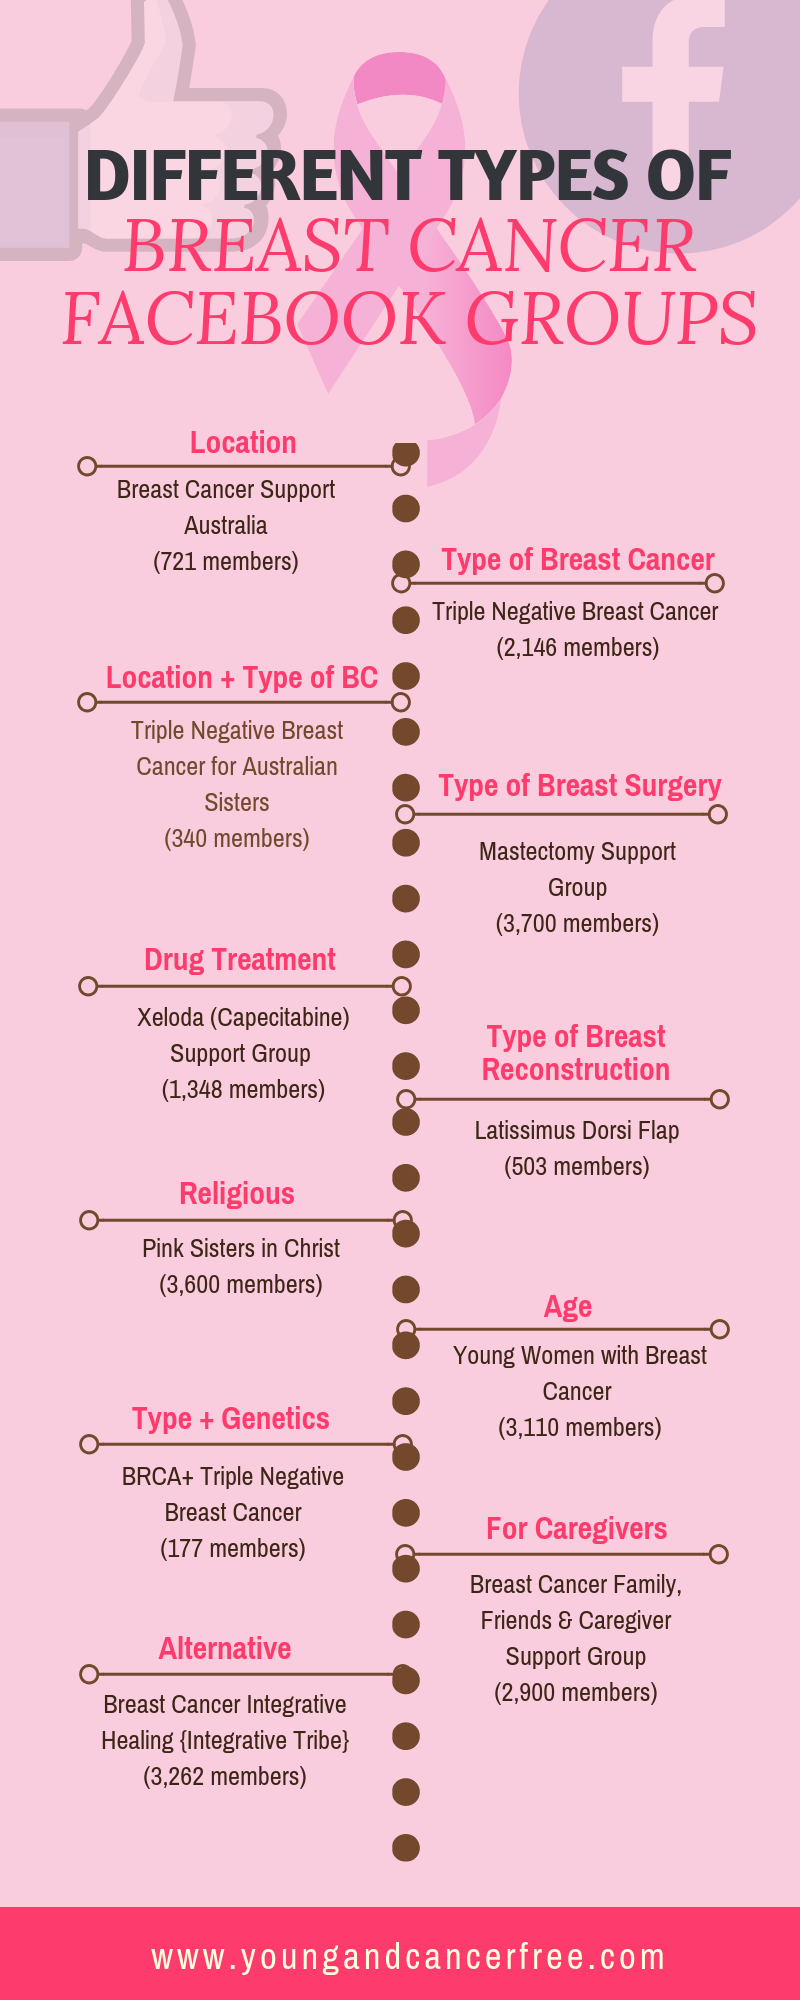 Different types of Breast Cancer Facebook Groups